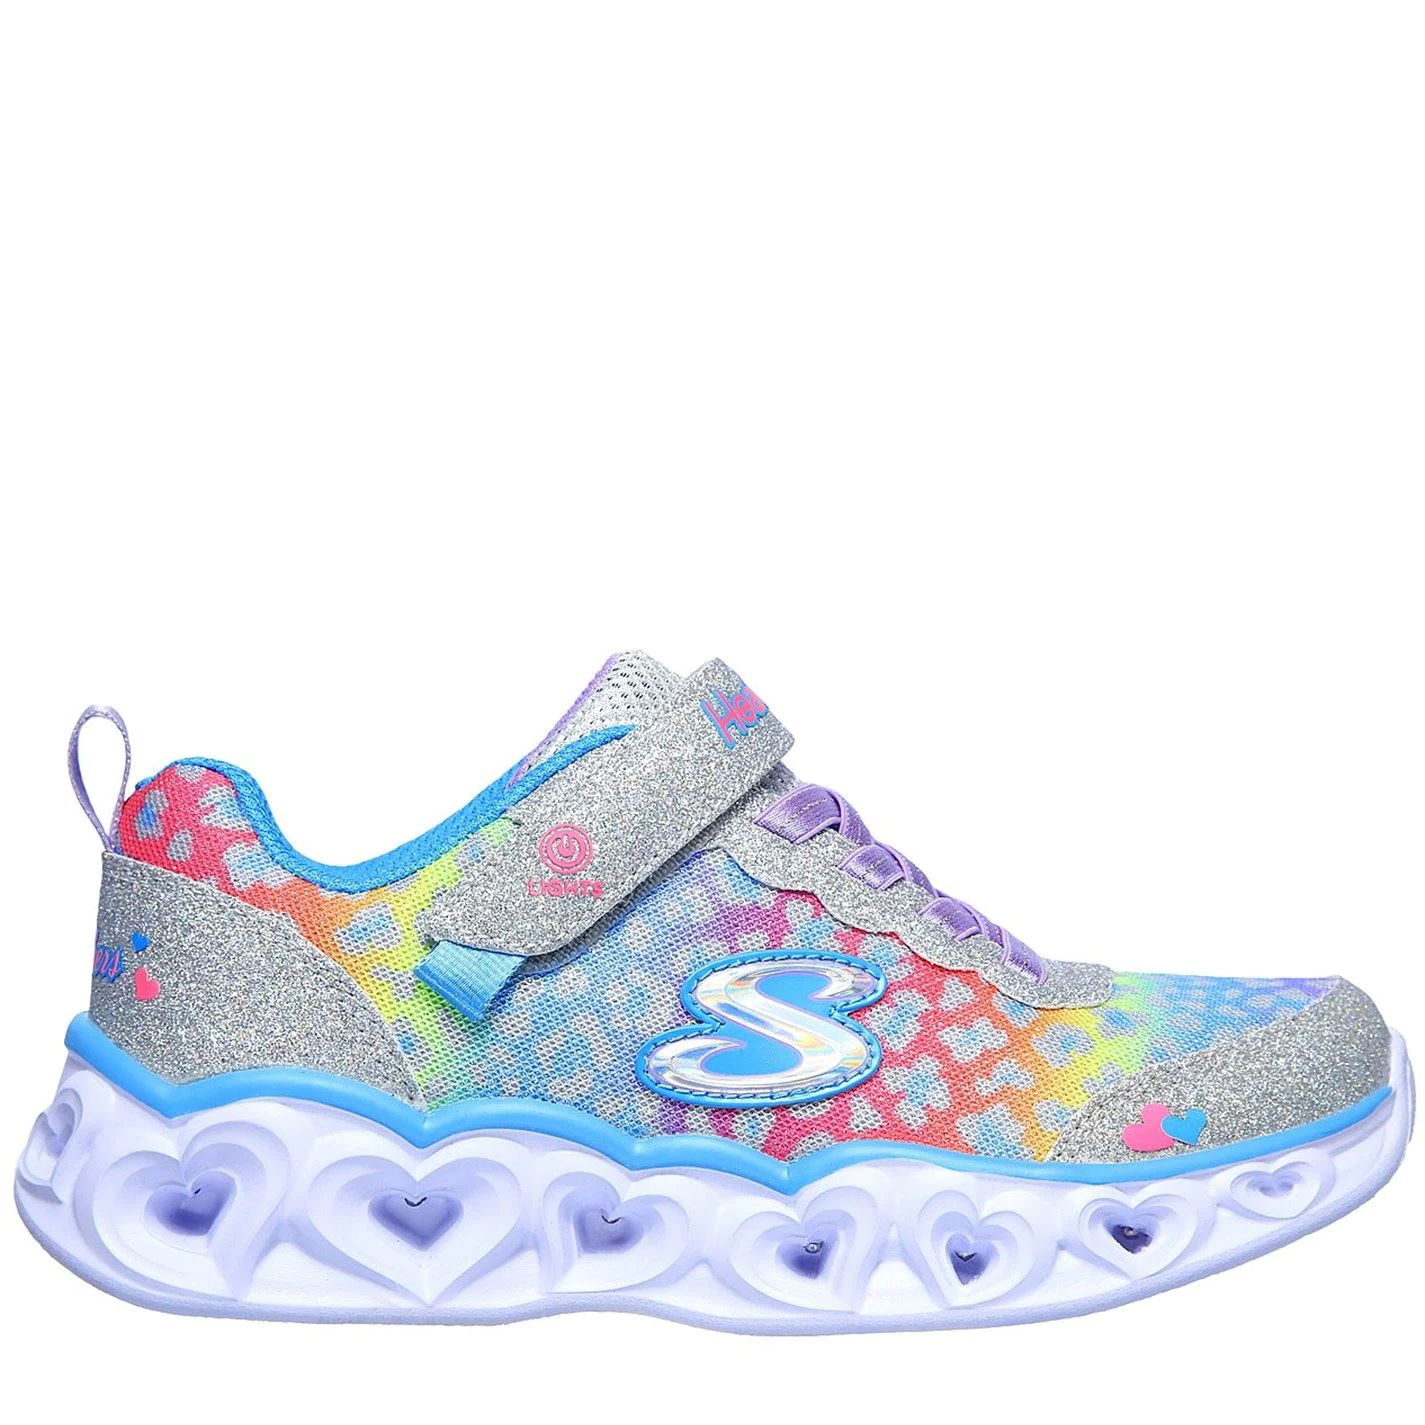 Skechers Heart Light Up Trainers Child Girls Silver/Multi